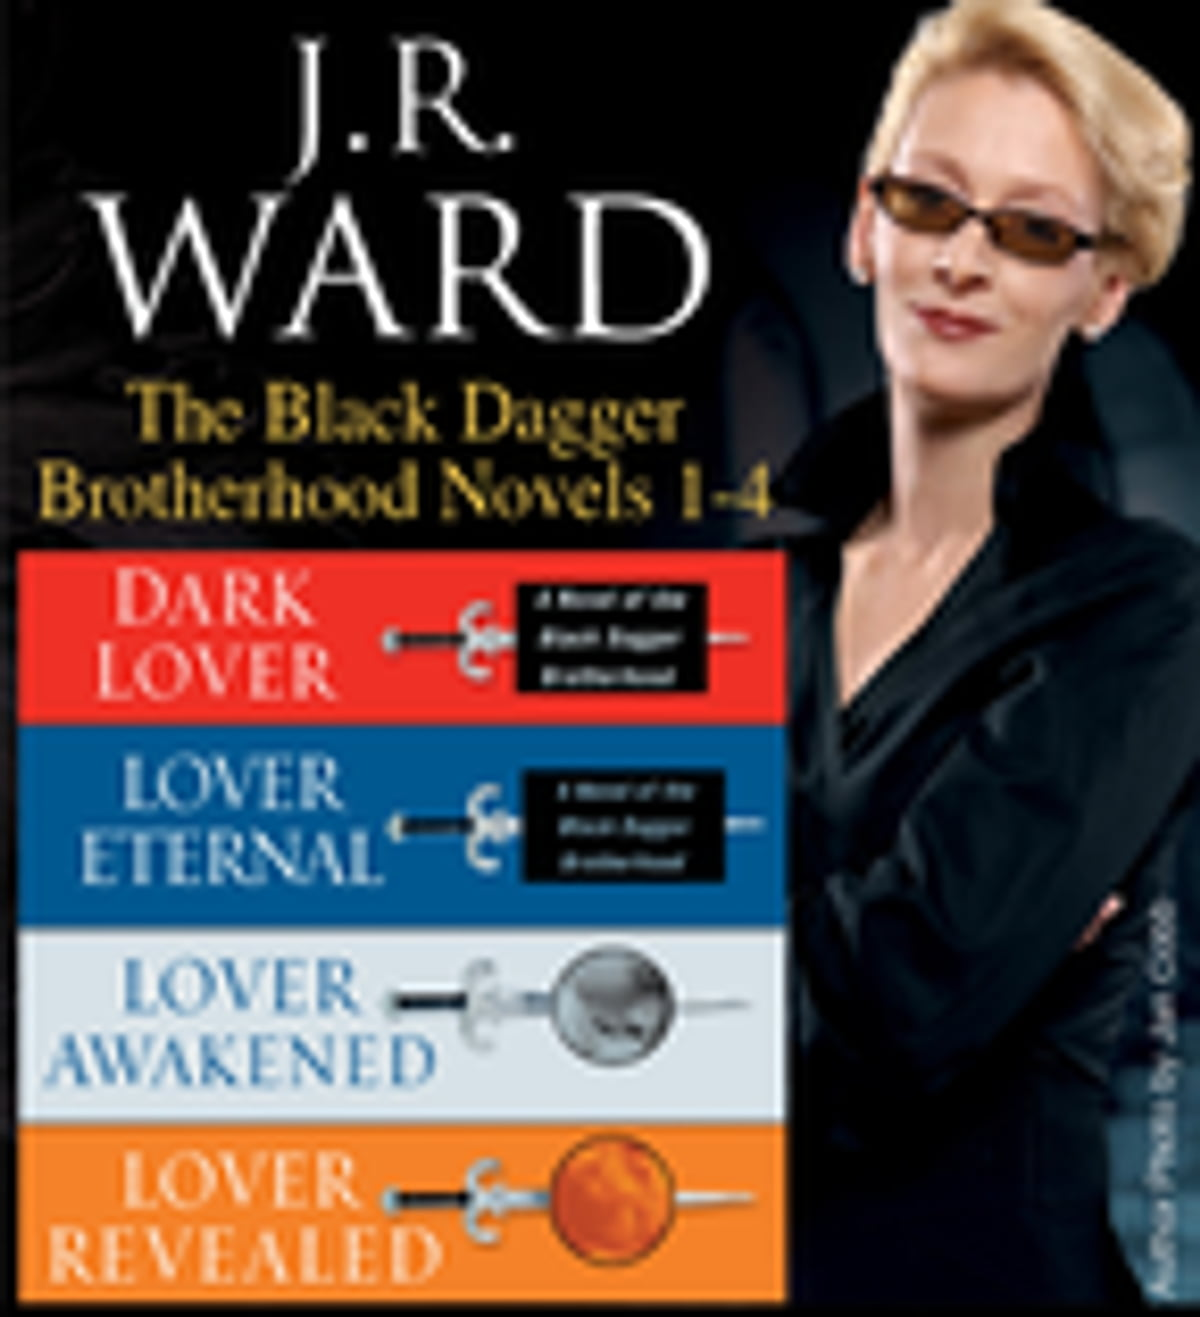 Jr Ward The Black Dagger Brotherhood Novels 14 Ebook By Jr Ward   9781101531327  Rakuten Kobo